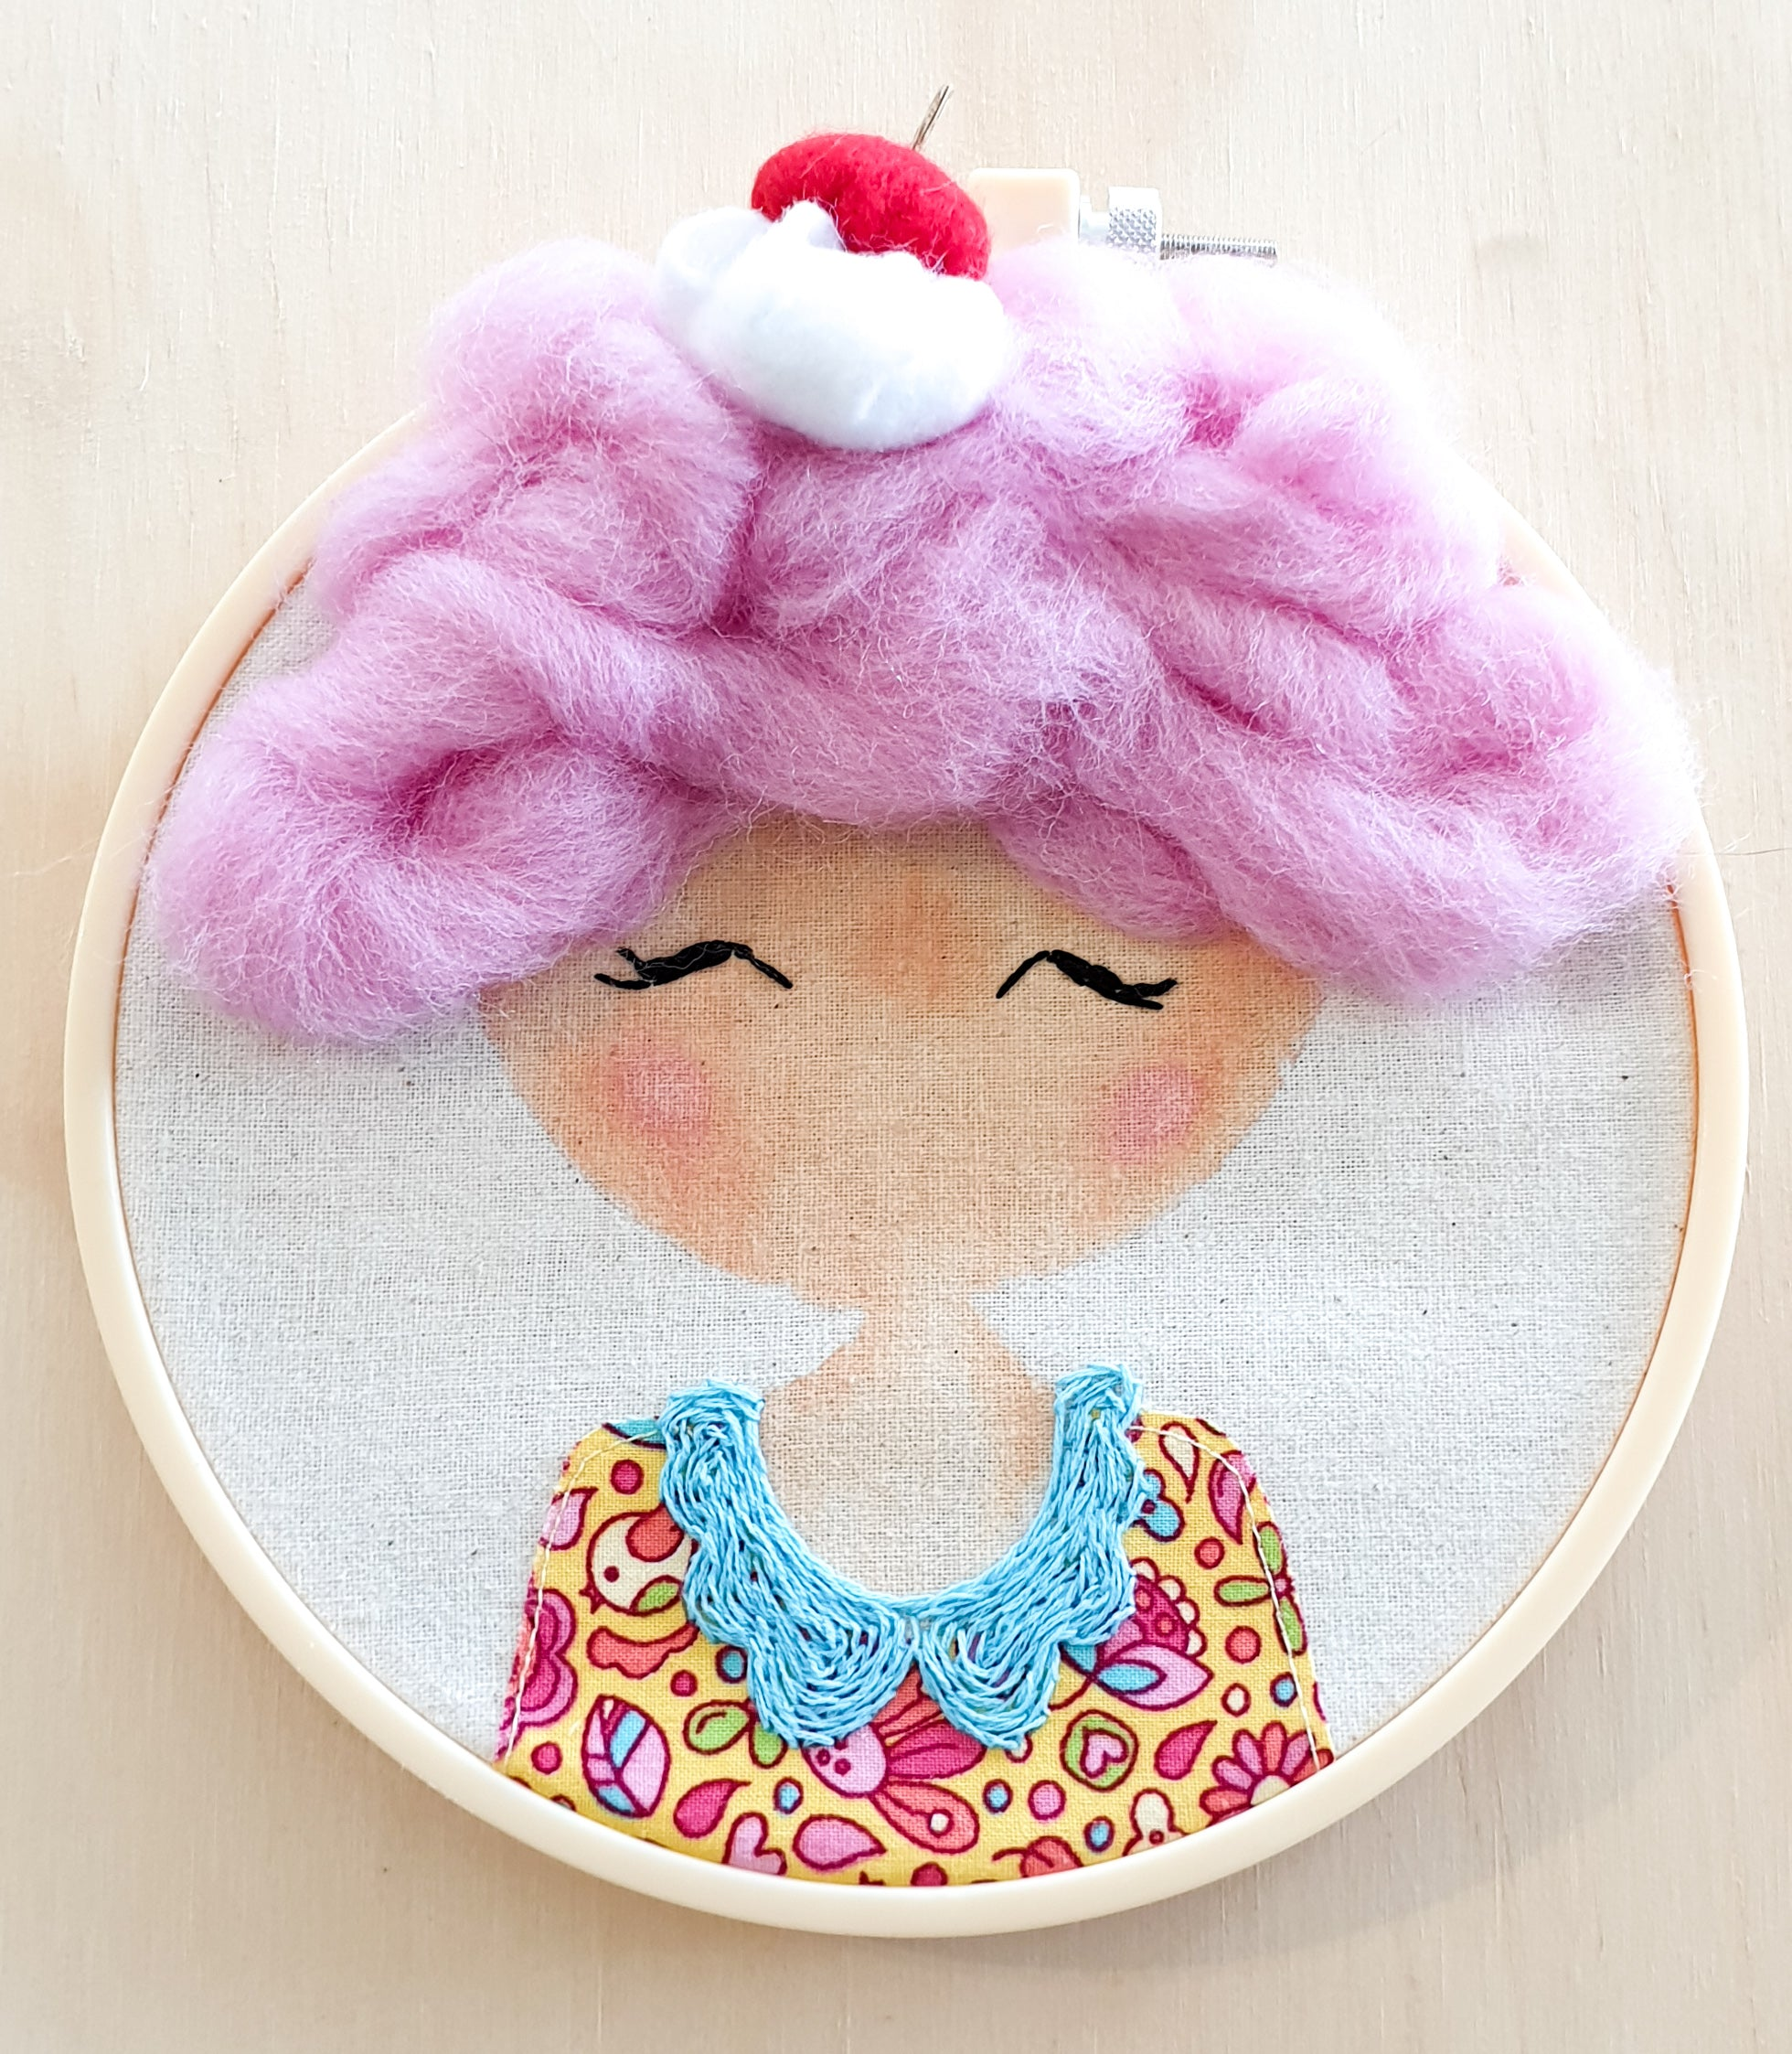 Hoop art doll - Wall hangable doll